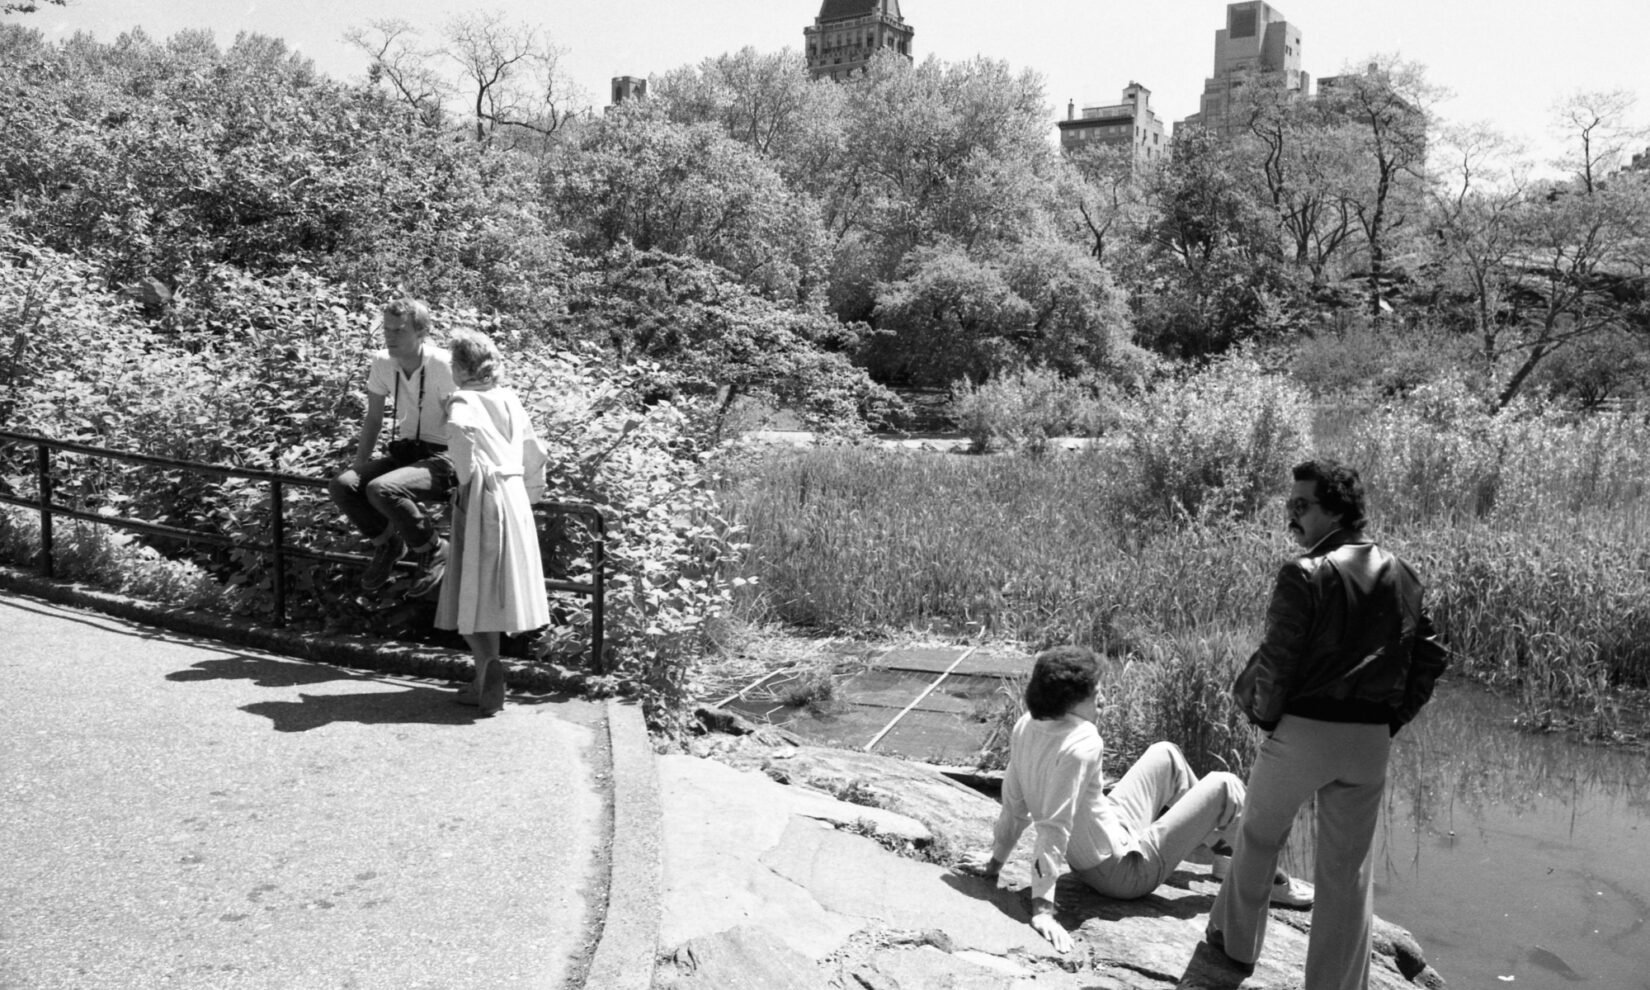 Park visitors in 1981 by the Lake